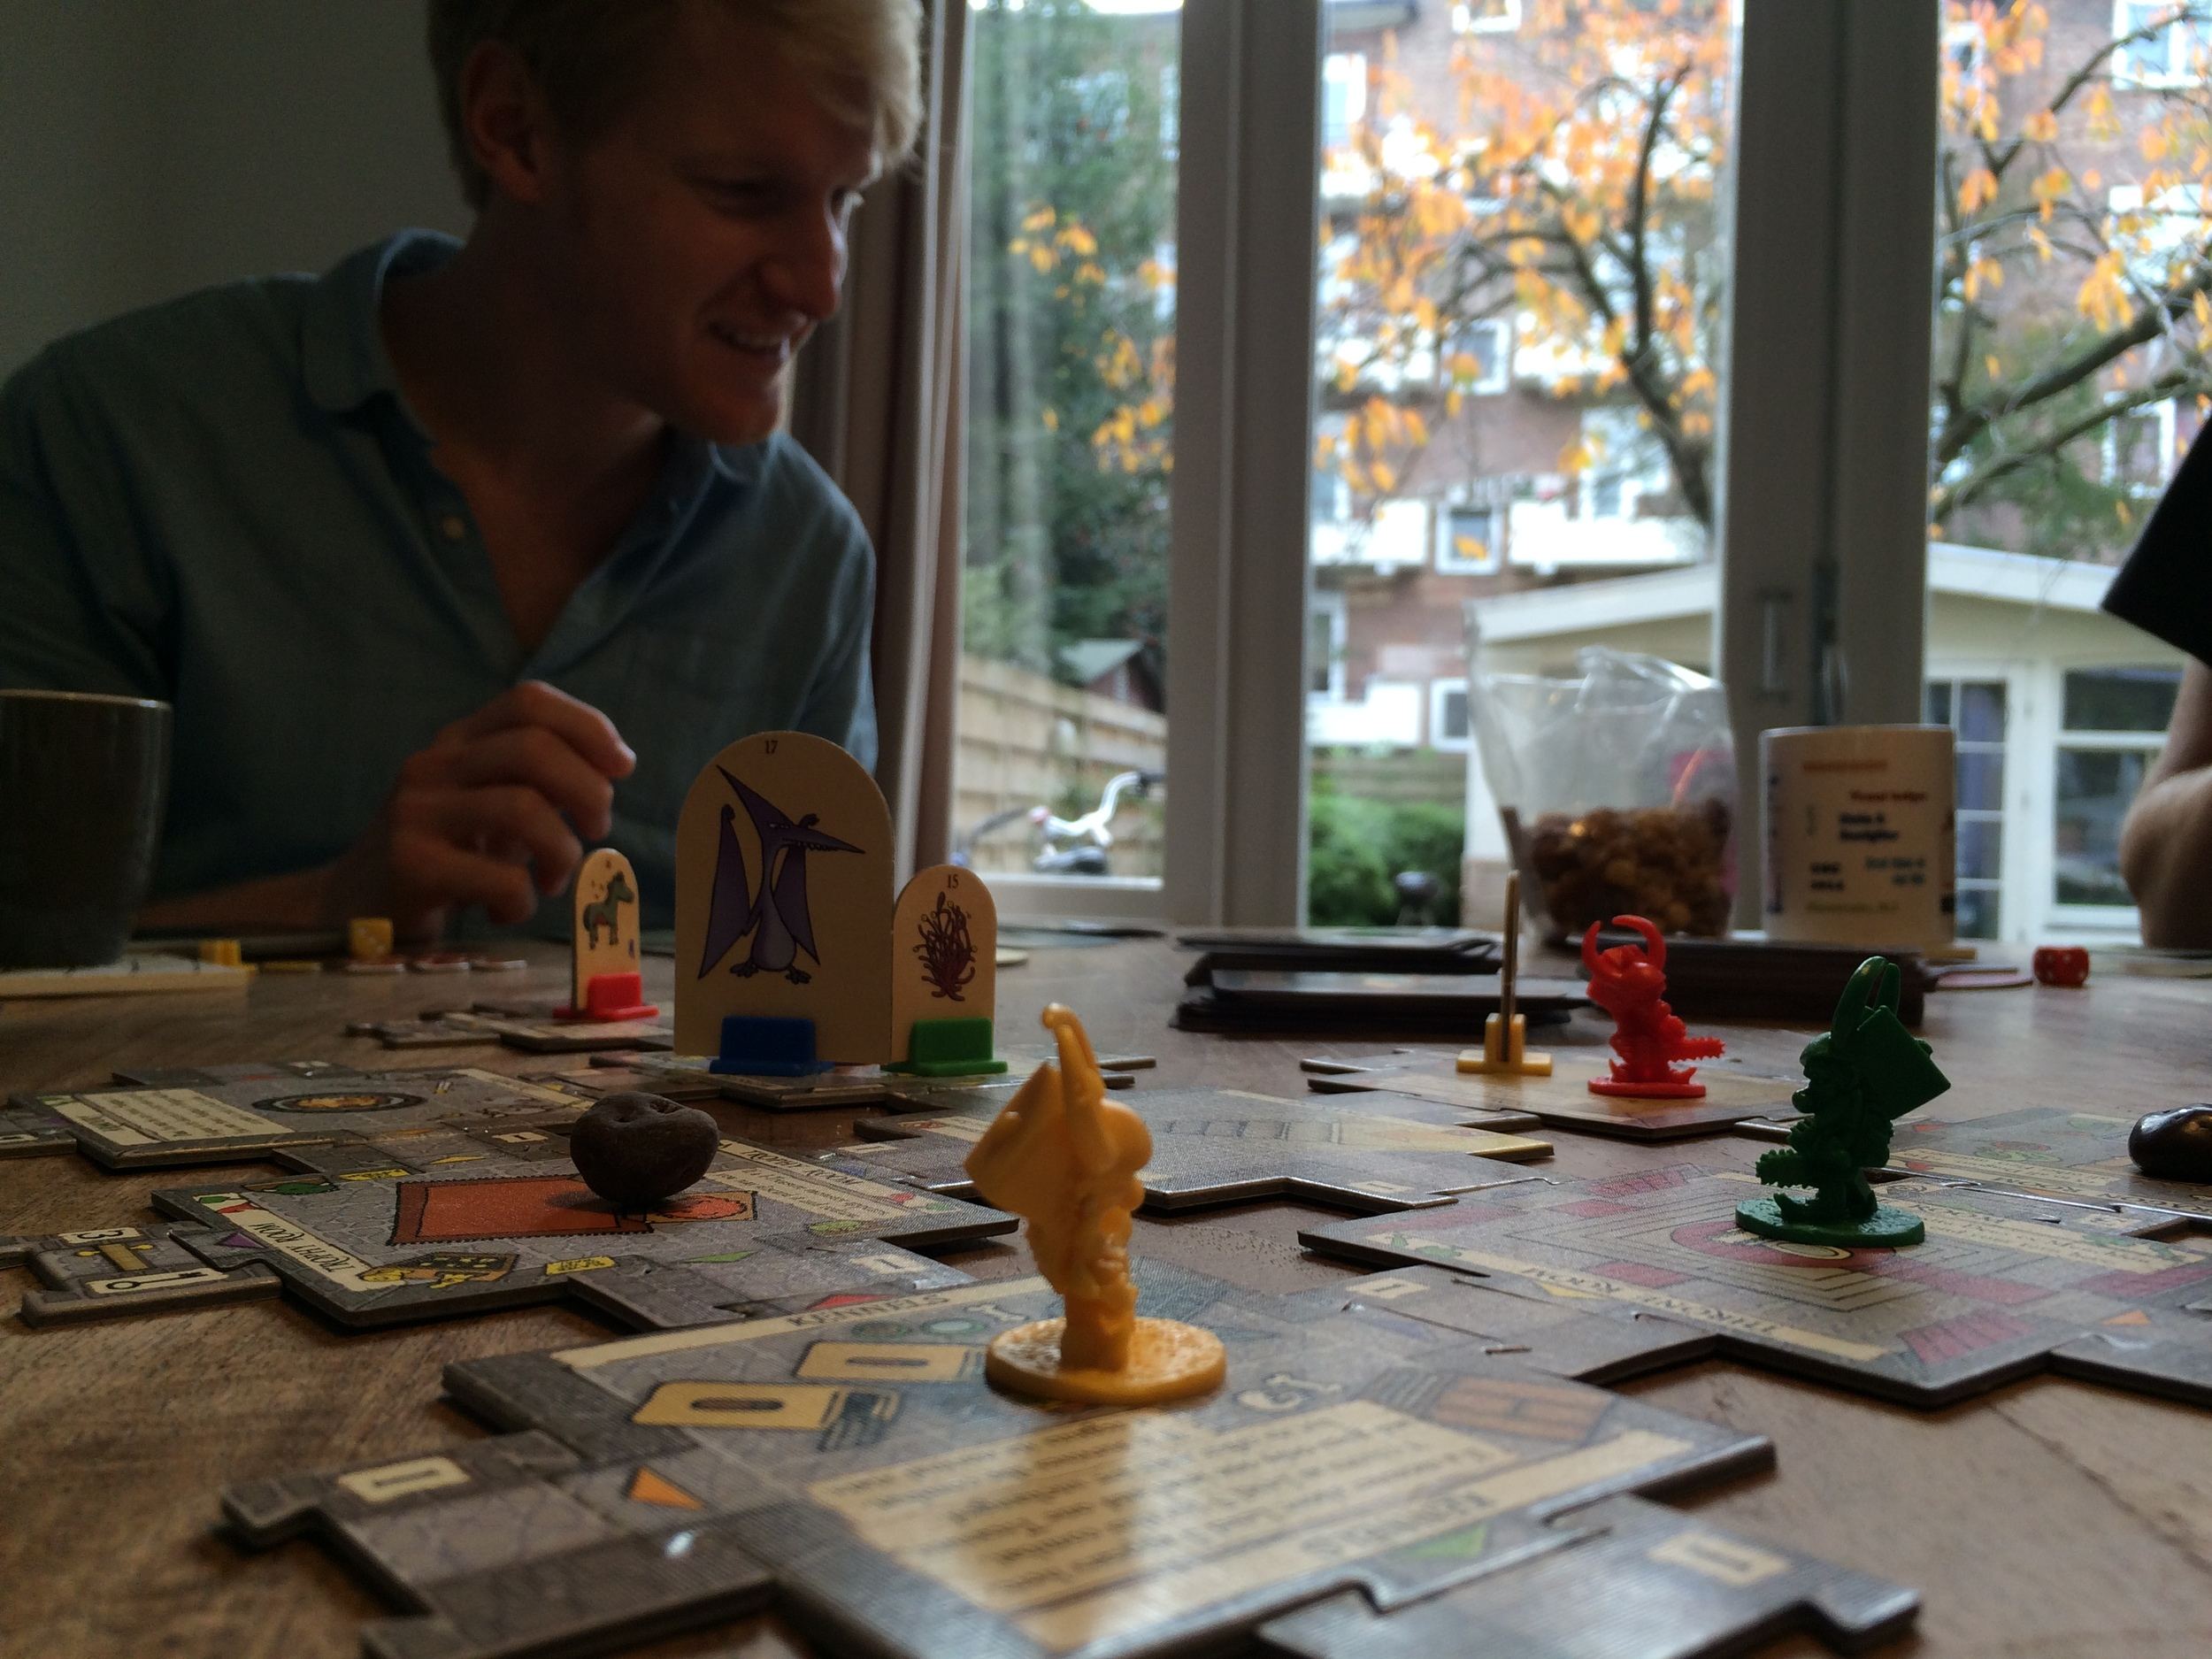 Playing Munchkin Quest with friends. Such a fun game!